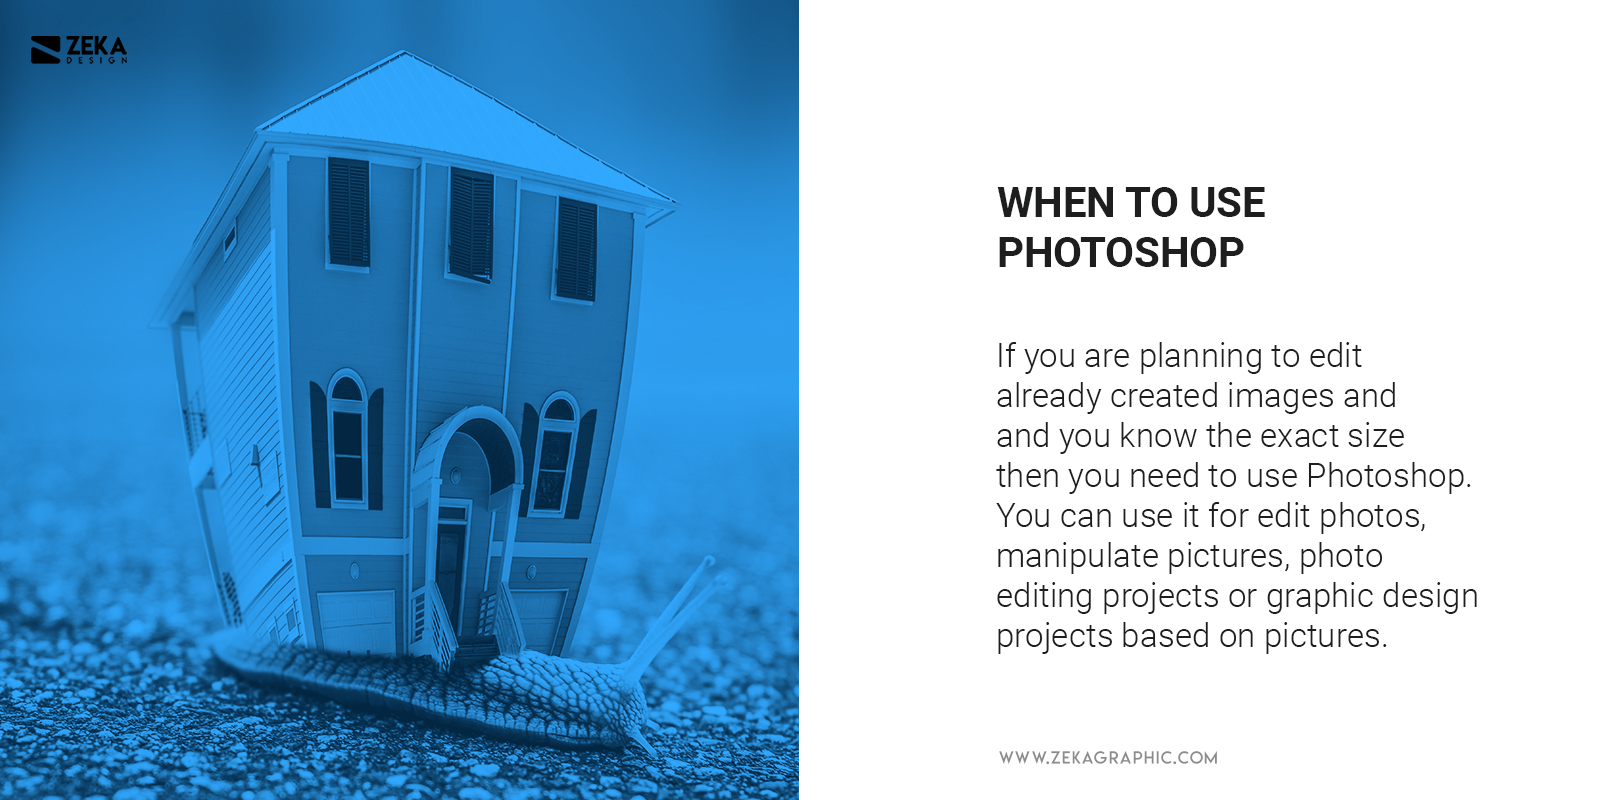 When To Use Photoshop in graphic design